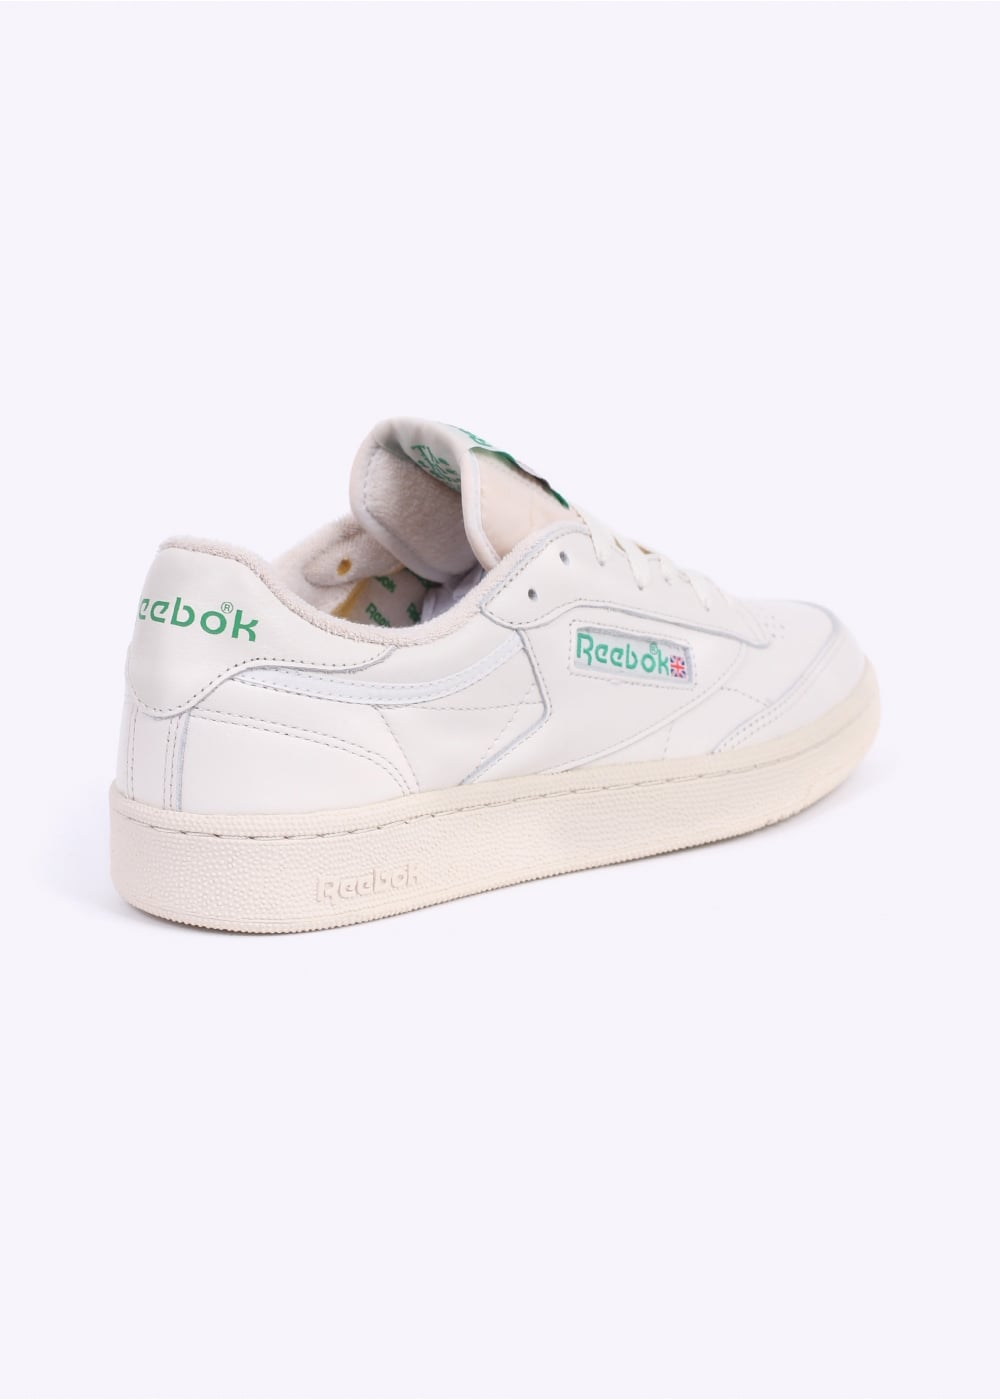 reebok vintage trainers cheap   OFF76% The Largest Catalog Discounts 710e73b1b